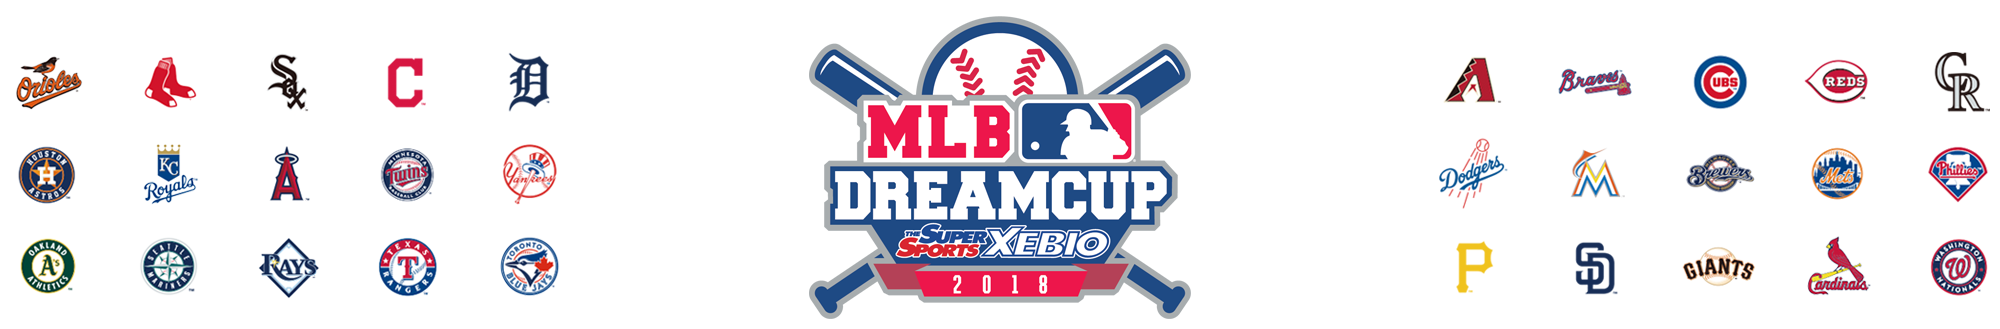 MLB DREAMCUP